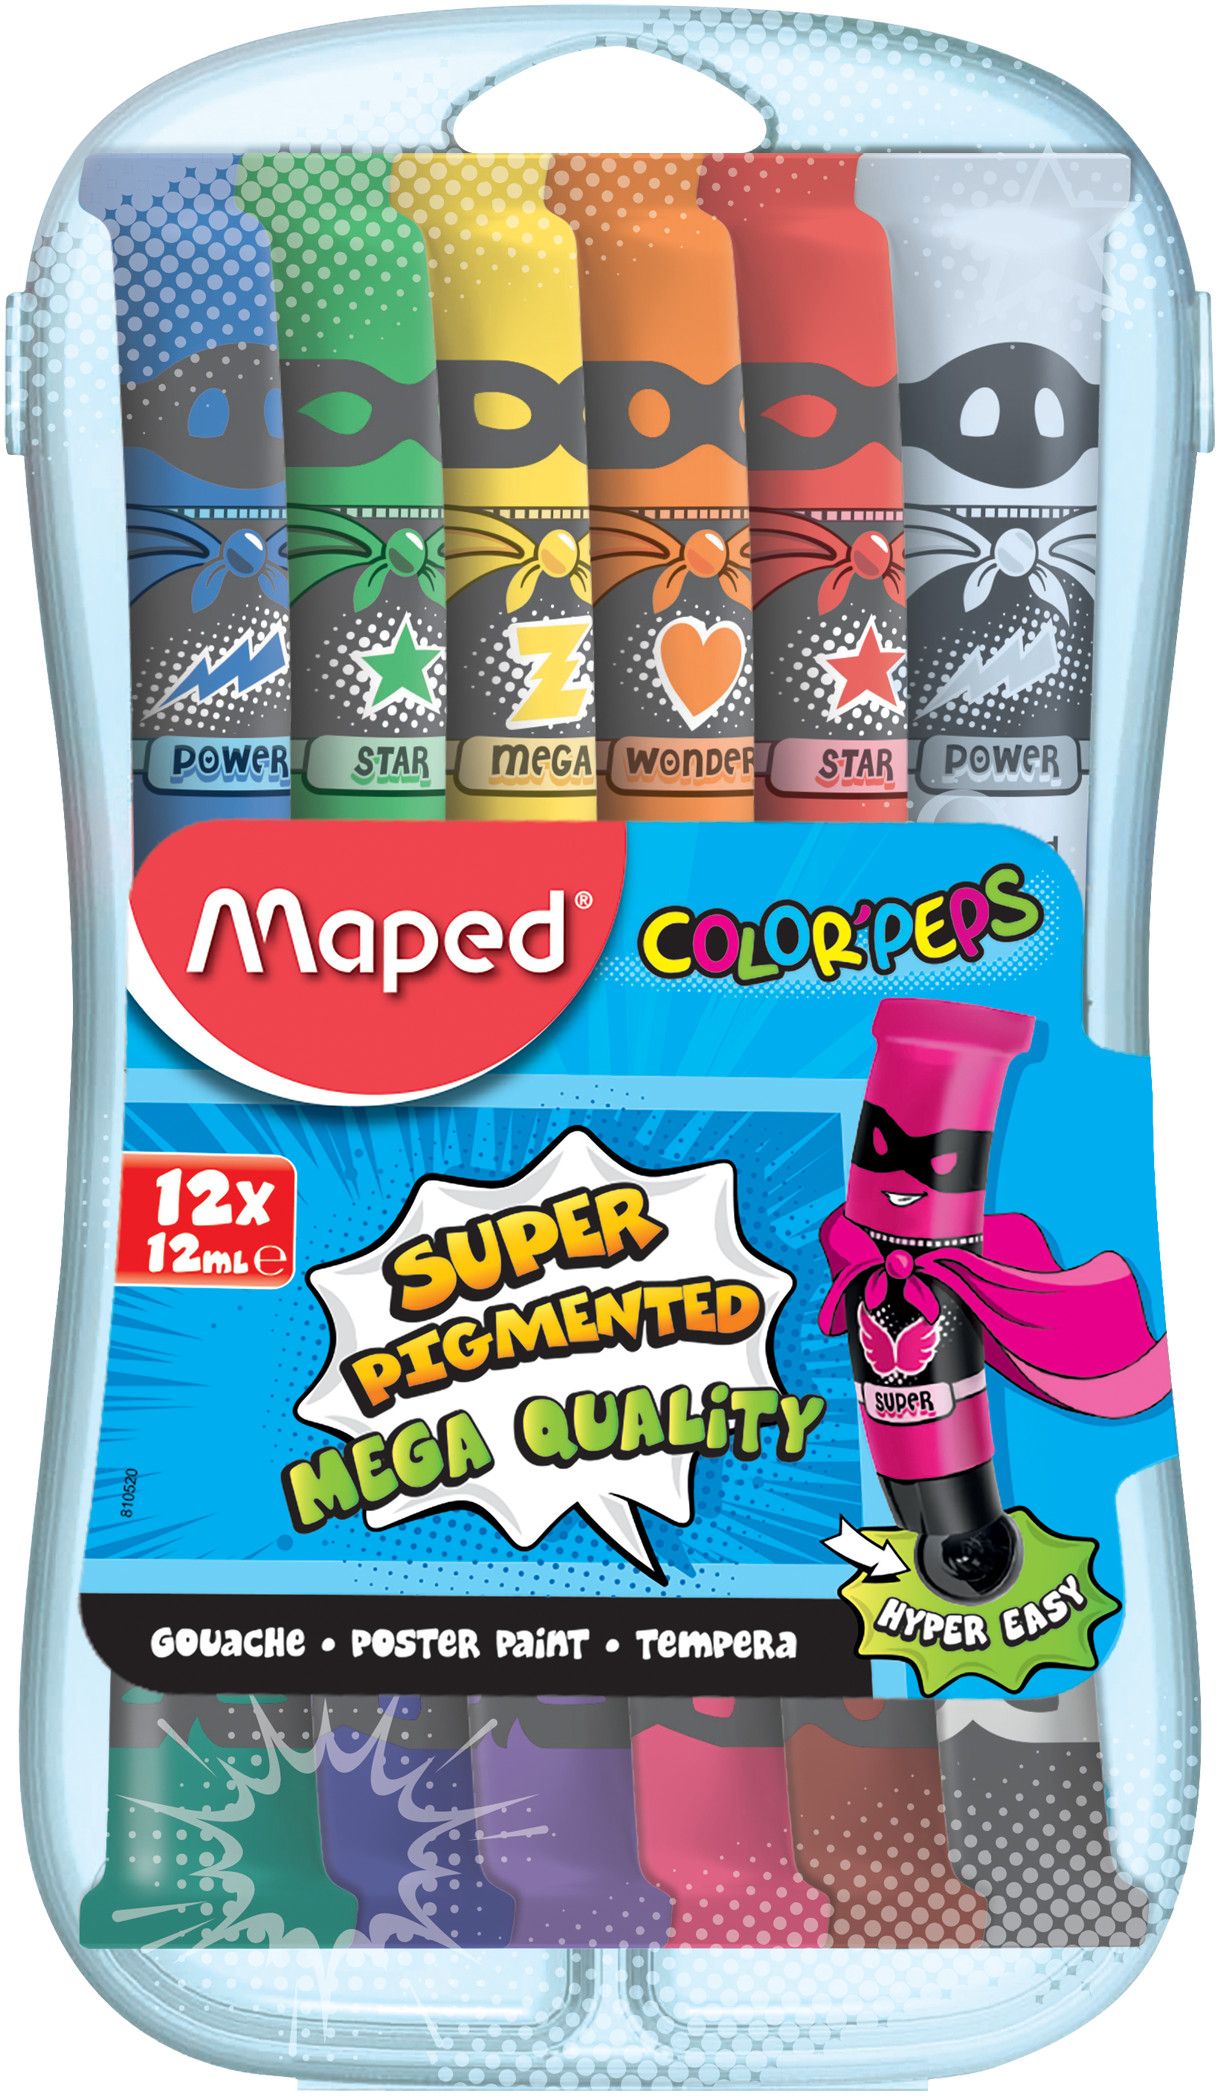 Гуашь 12шт Maped Colorpeps тюбик